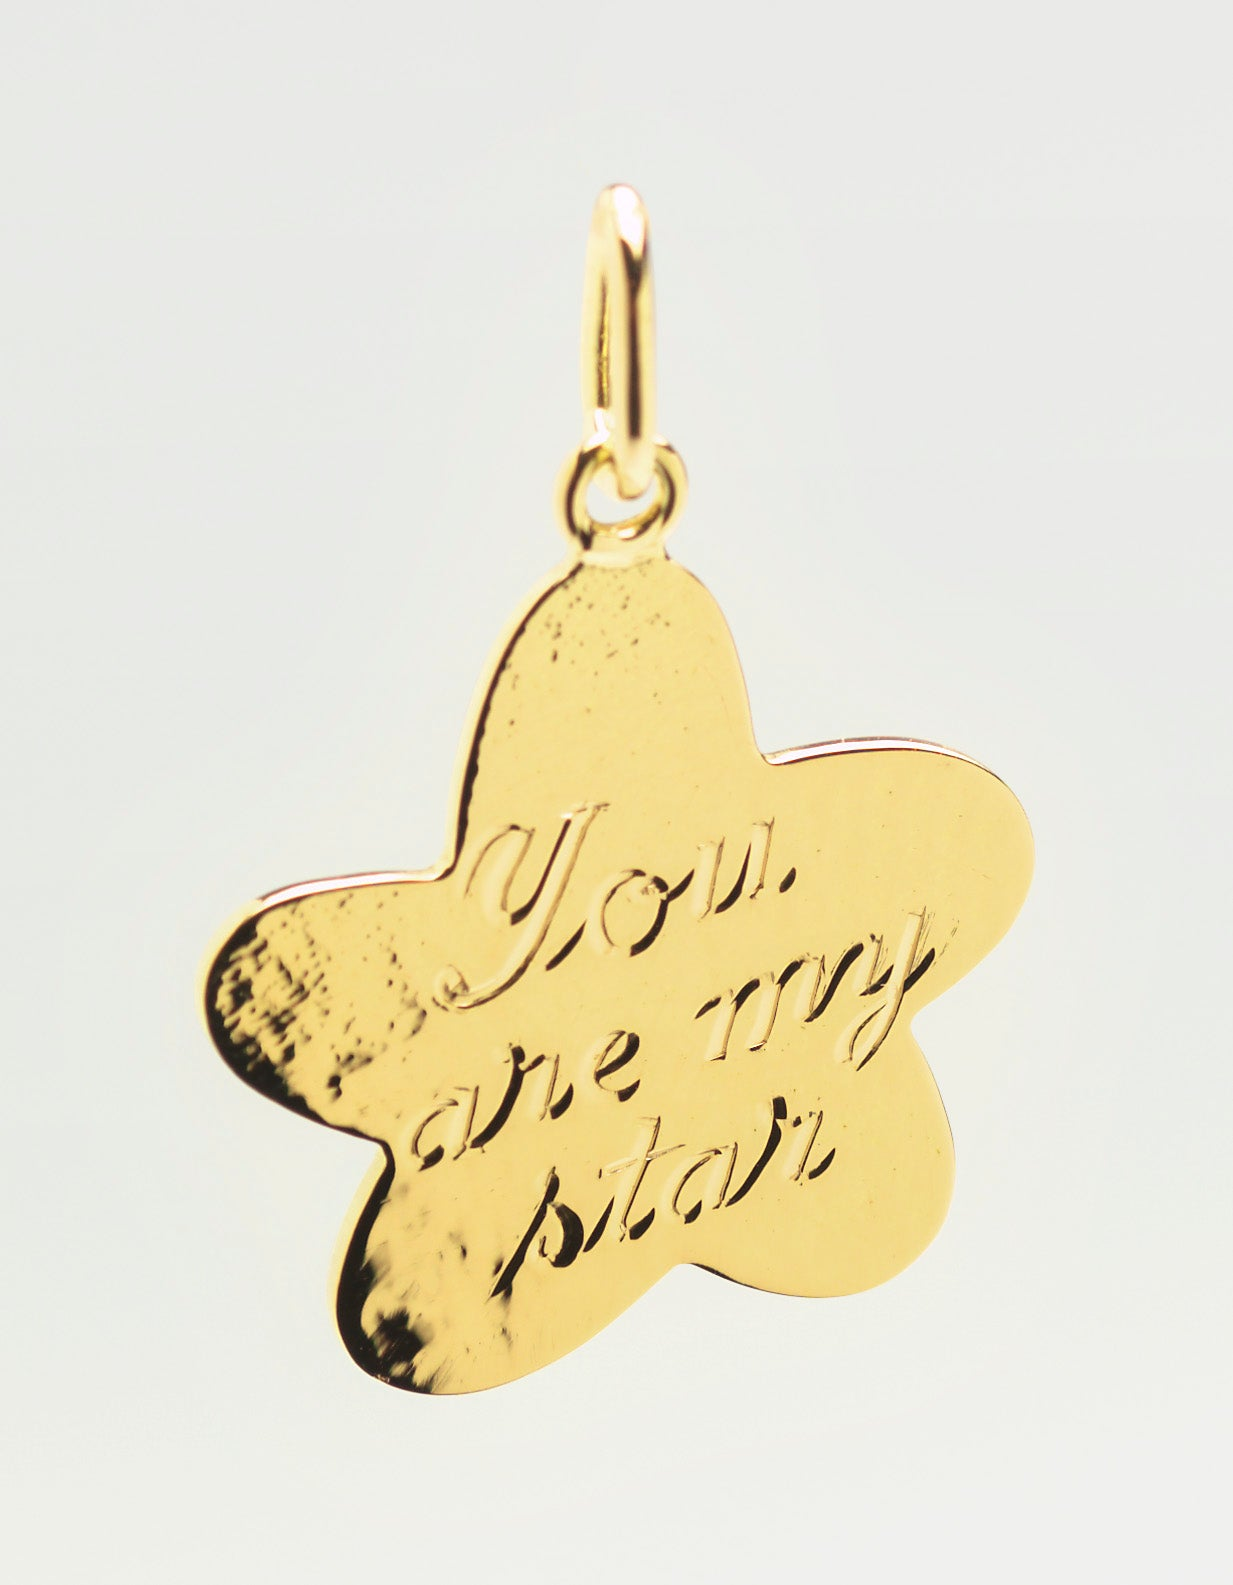 Image of pendant 'You are my star' in Fair trade gold